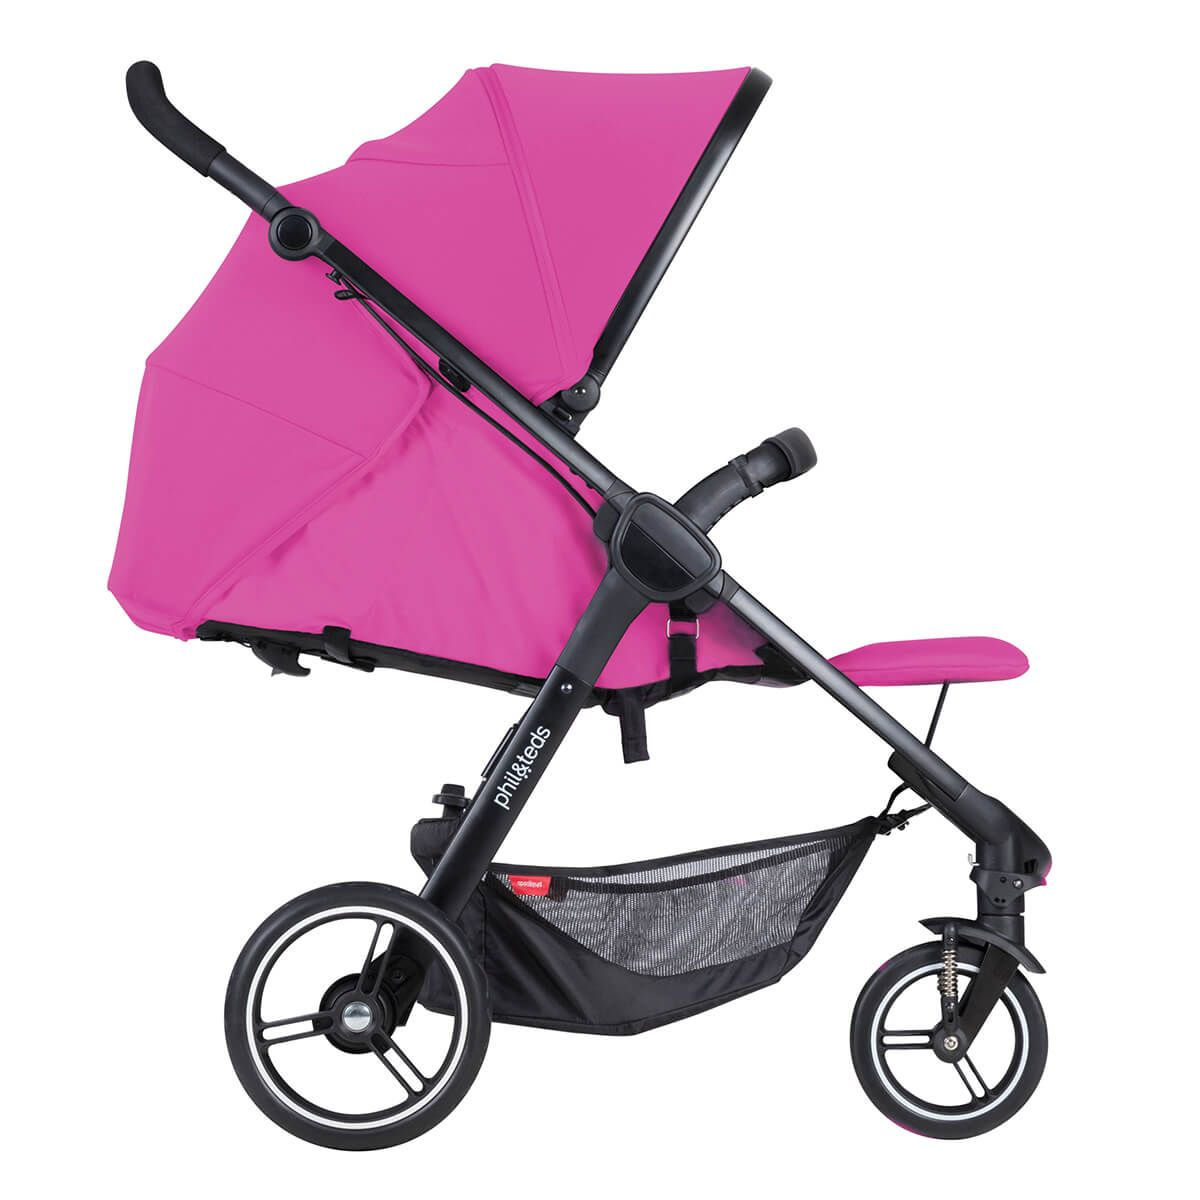 phil&teds smart stroller is compact&ready to go. the